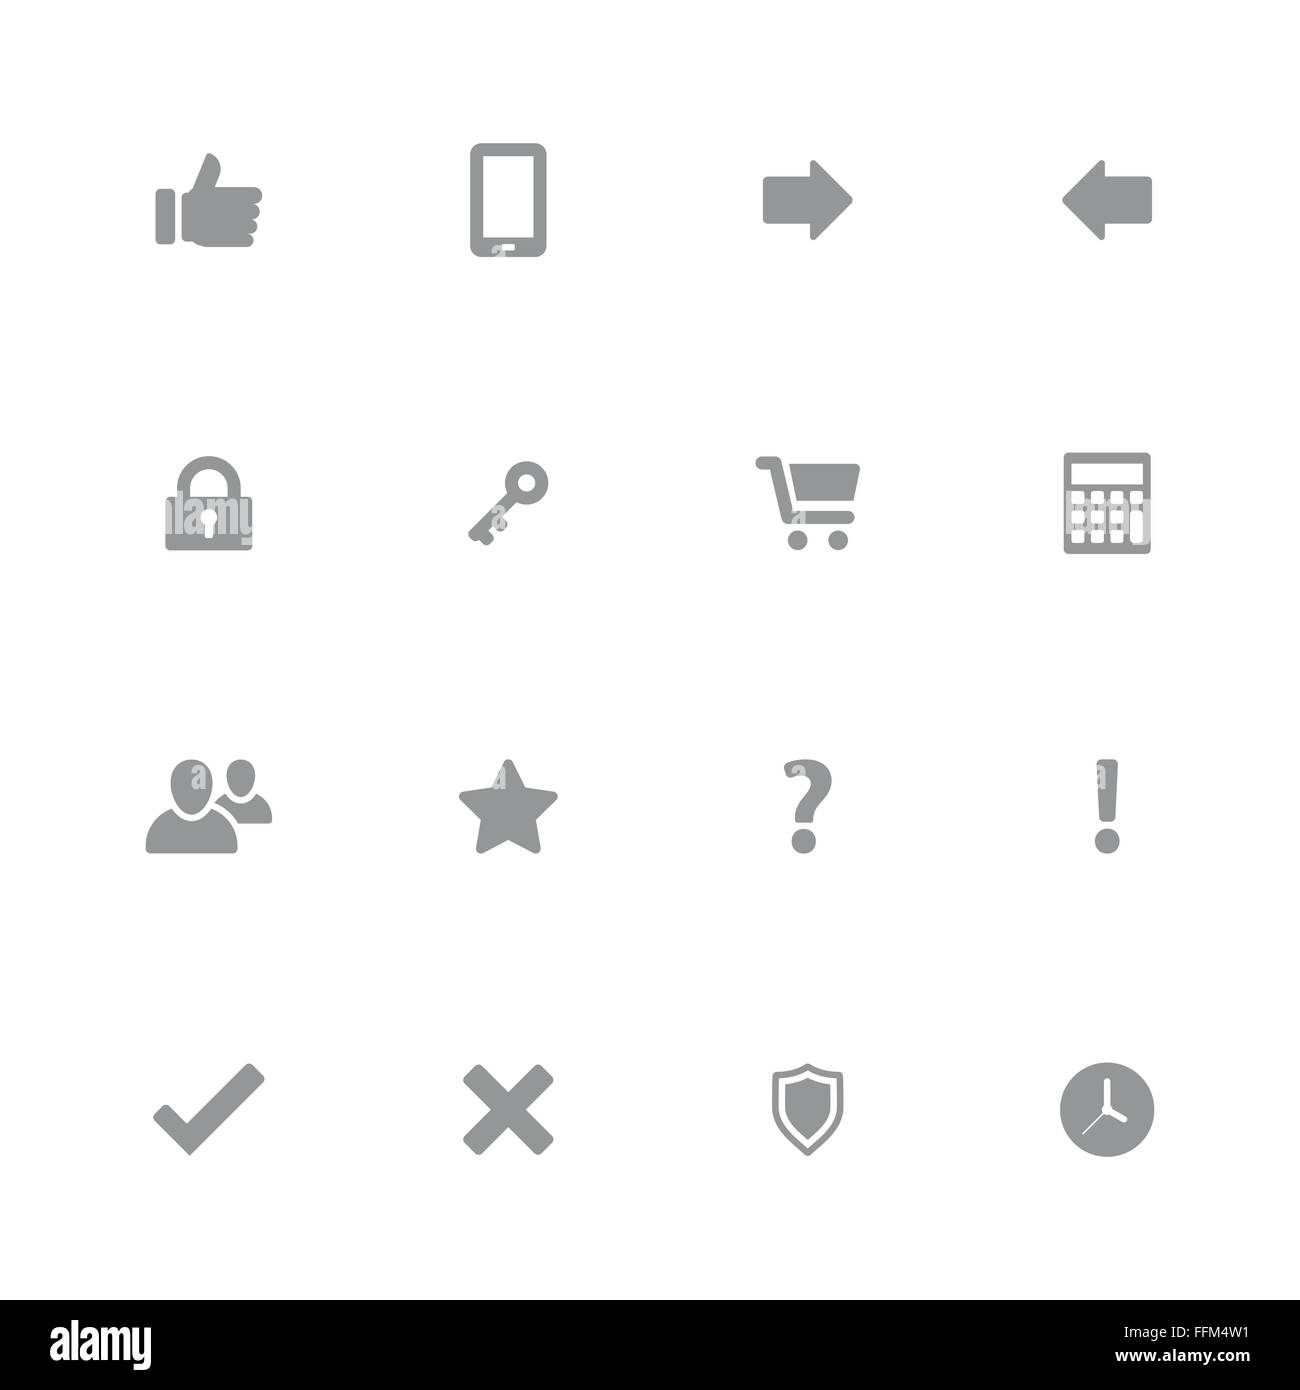 [EPS10] gray web icon set 2 for web design, user interface (UI), infographic and mobile application (apps) - Stock Vector